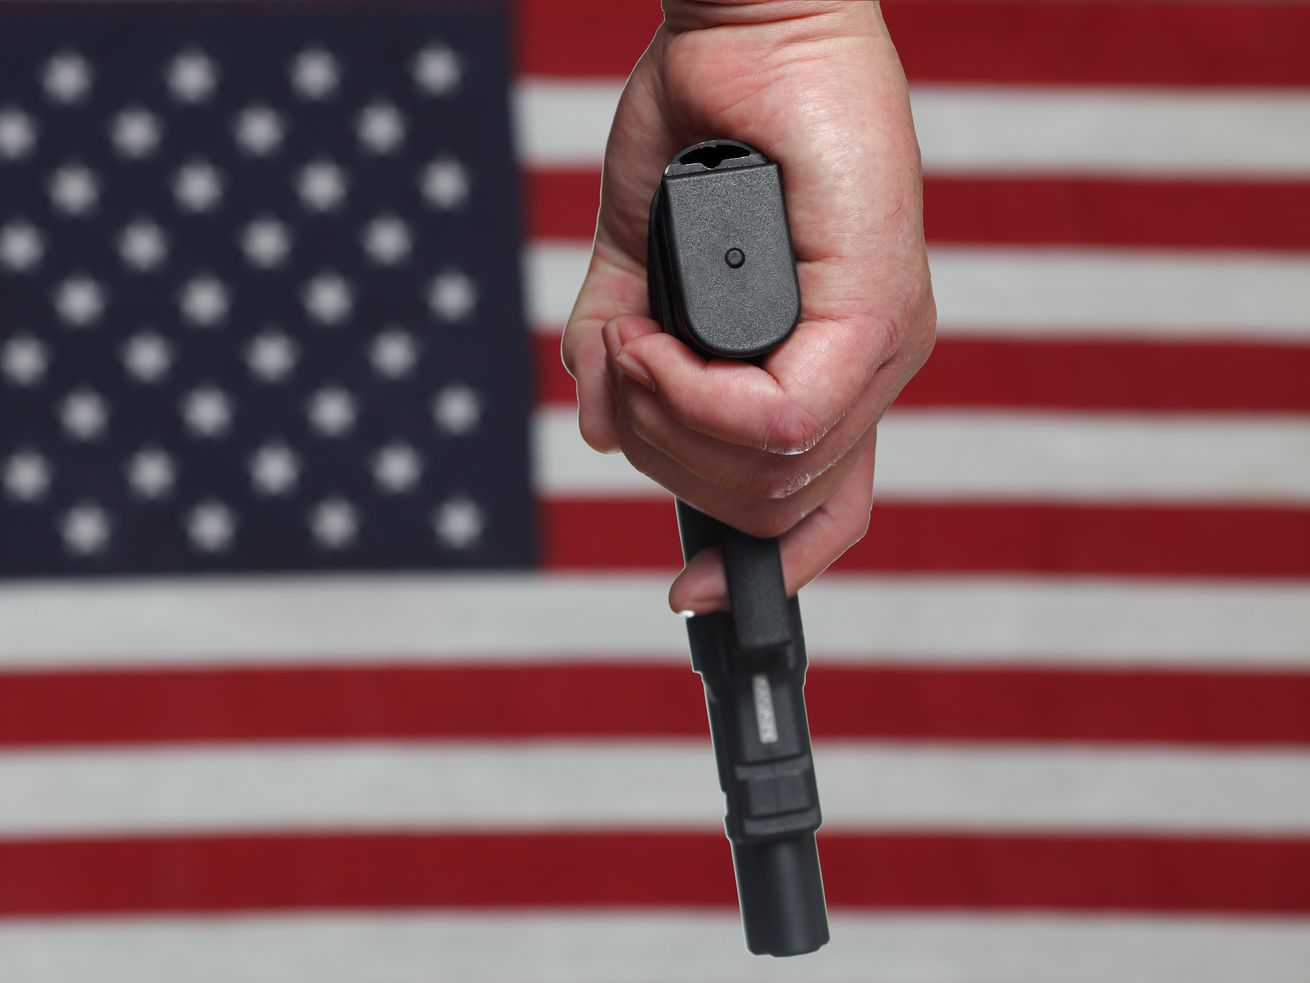 The US regularly — almost daily — has shootings in which multiple people are wounded or killed.